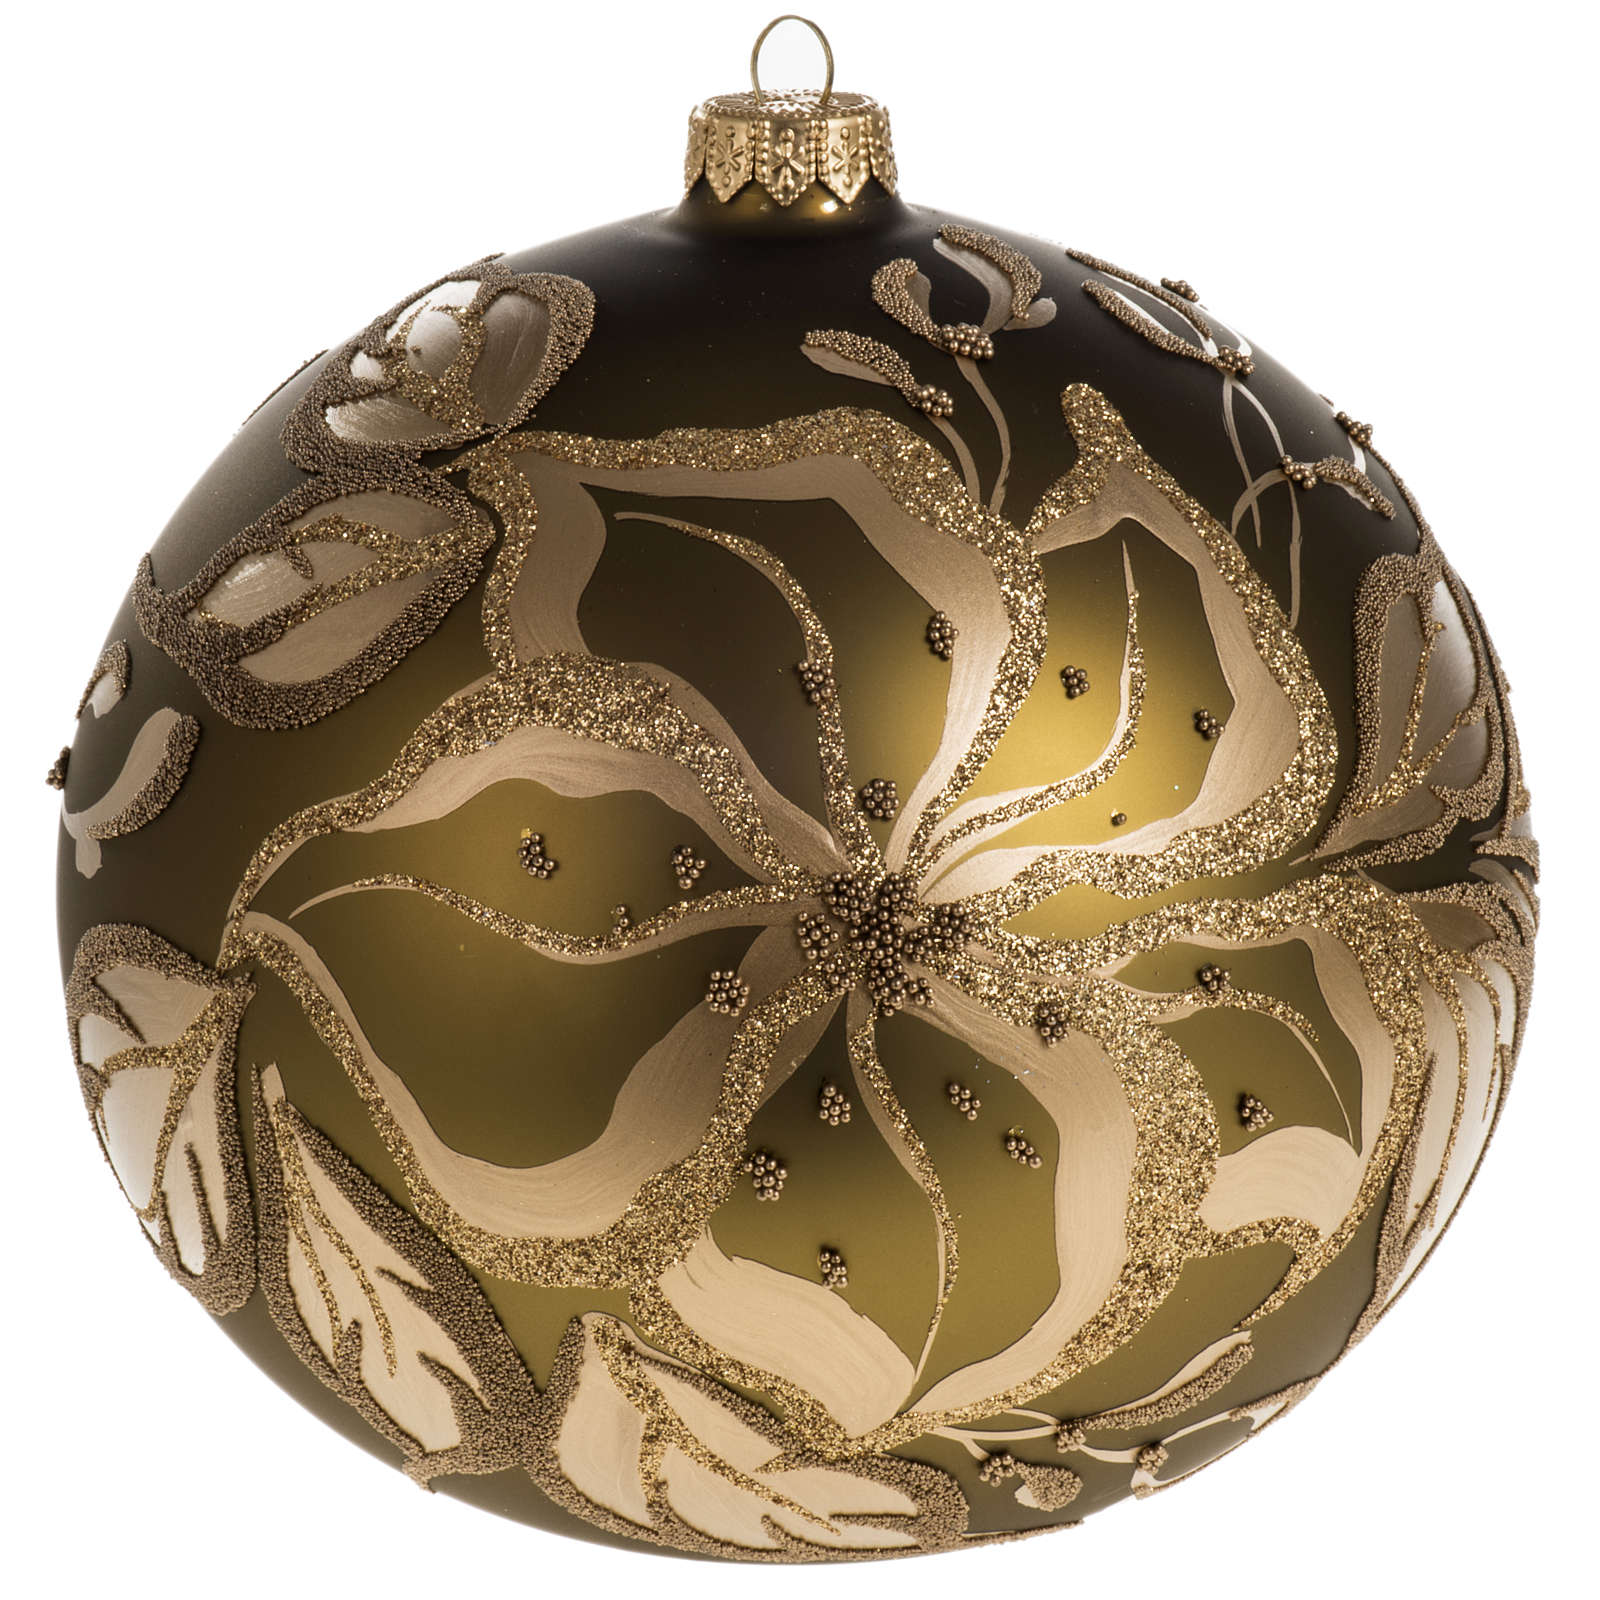 Christmas bauble, gold glass and decorations, 15cm 4